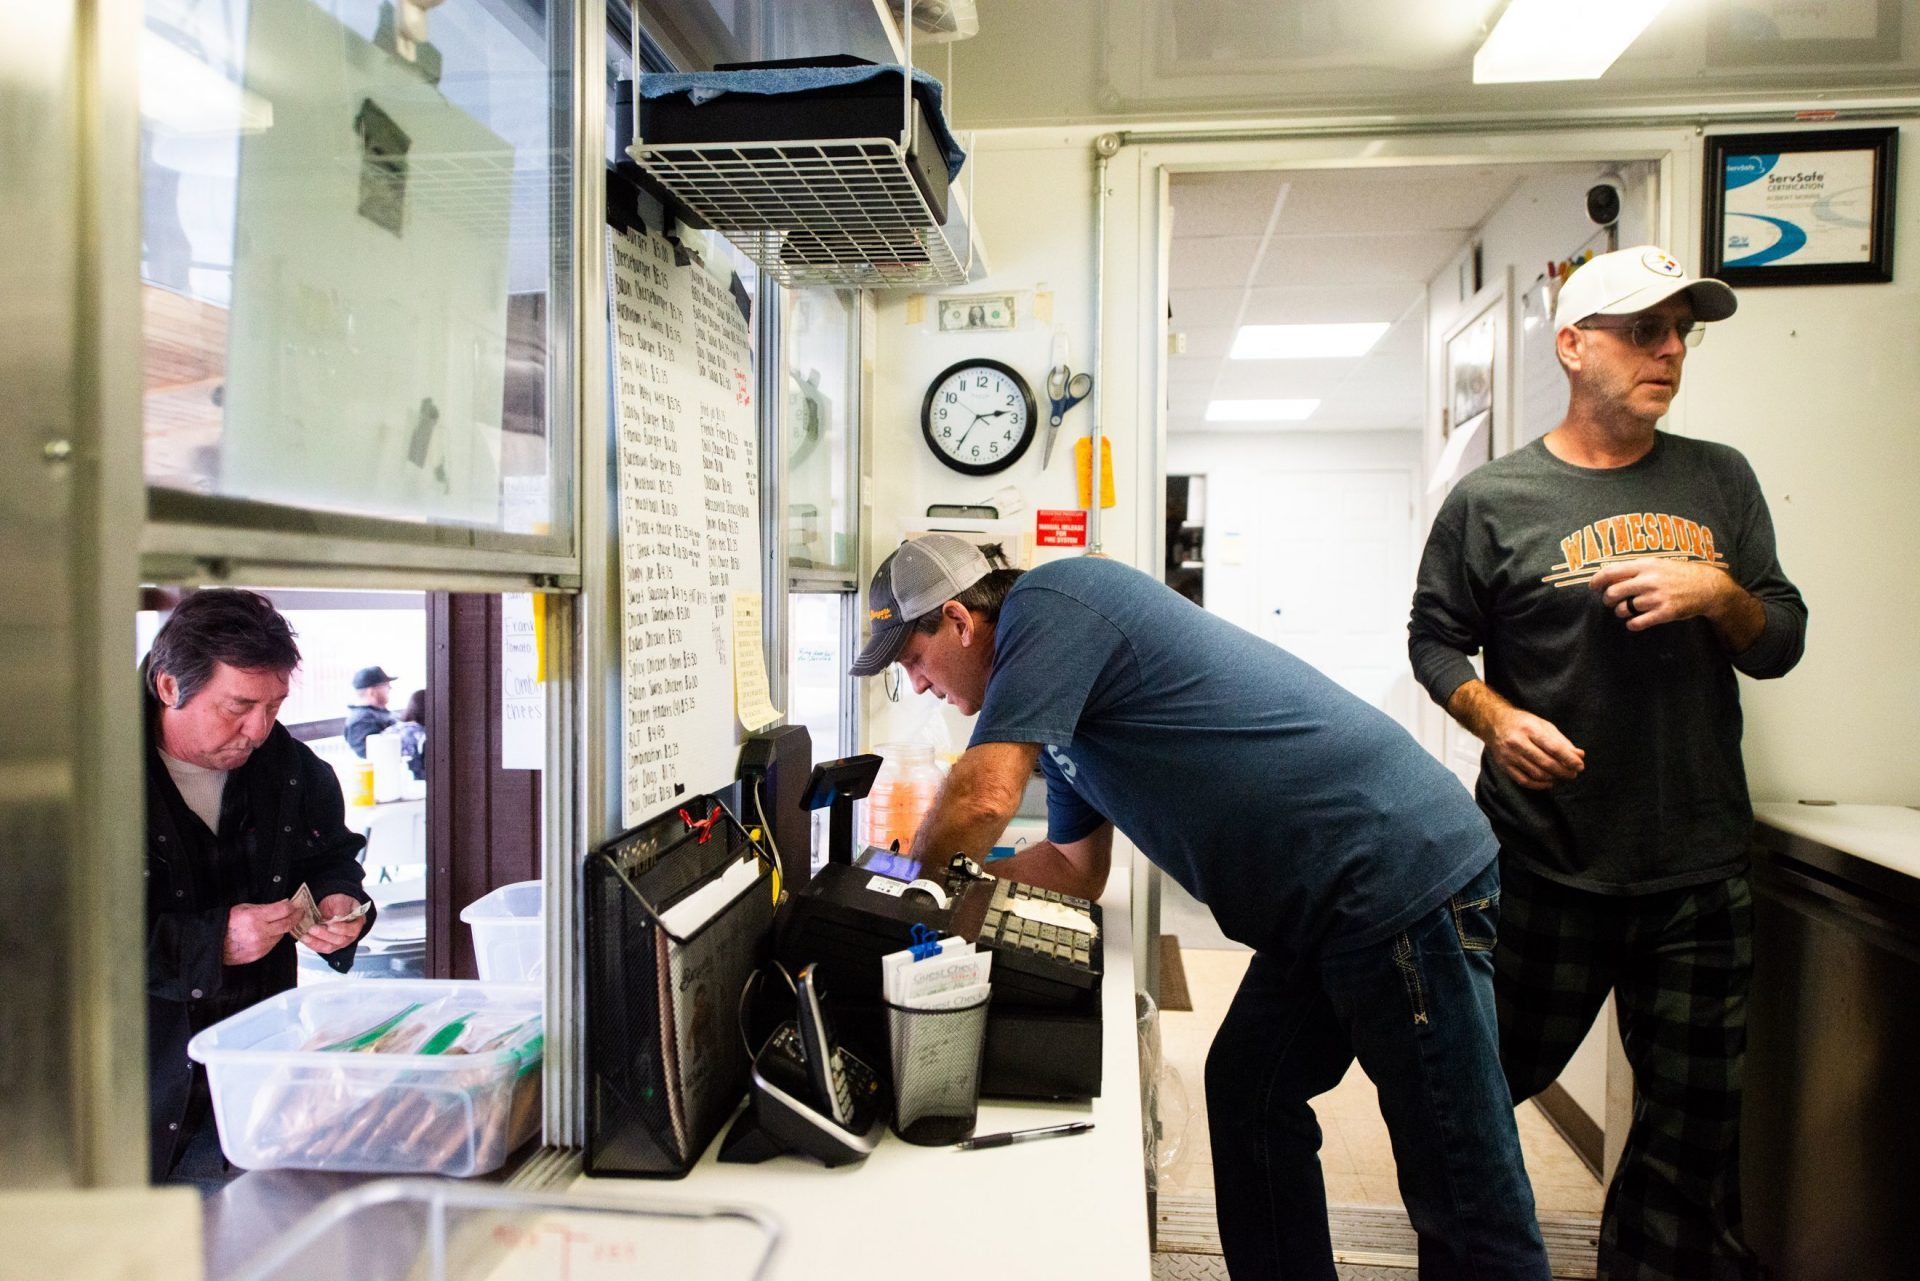 Bob Morris, center, owner of Burgers & More, takes a customer order while working with his brother, Scott Morris, right, at the family burger business in Waynesburg. Morris said he has plans to expand his shop in the summer to also serve ice cream for locals.